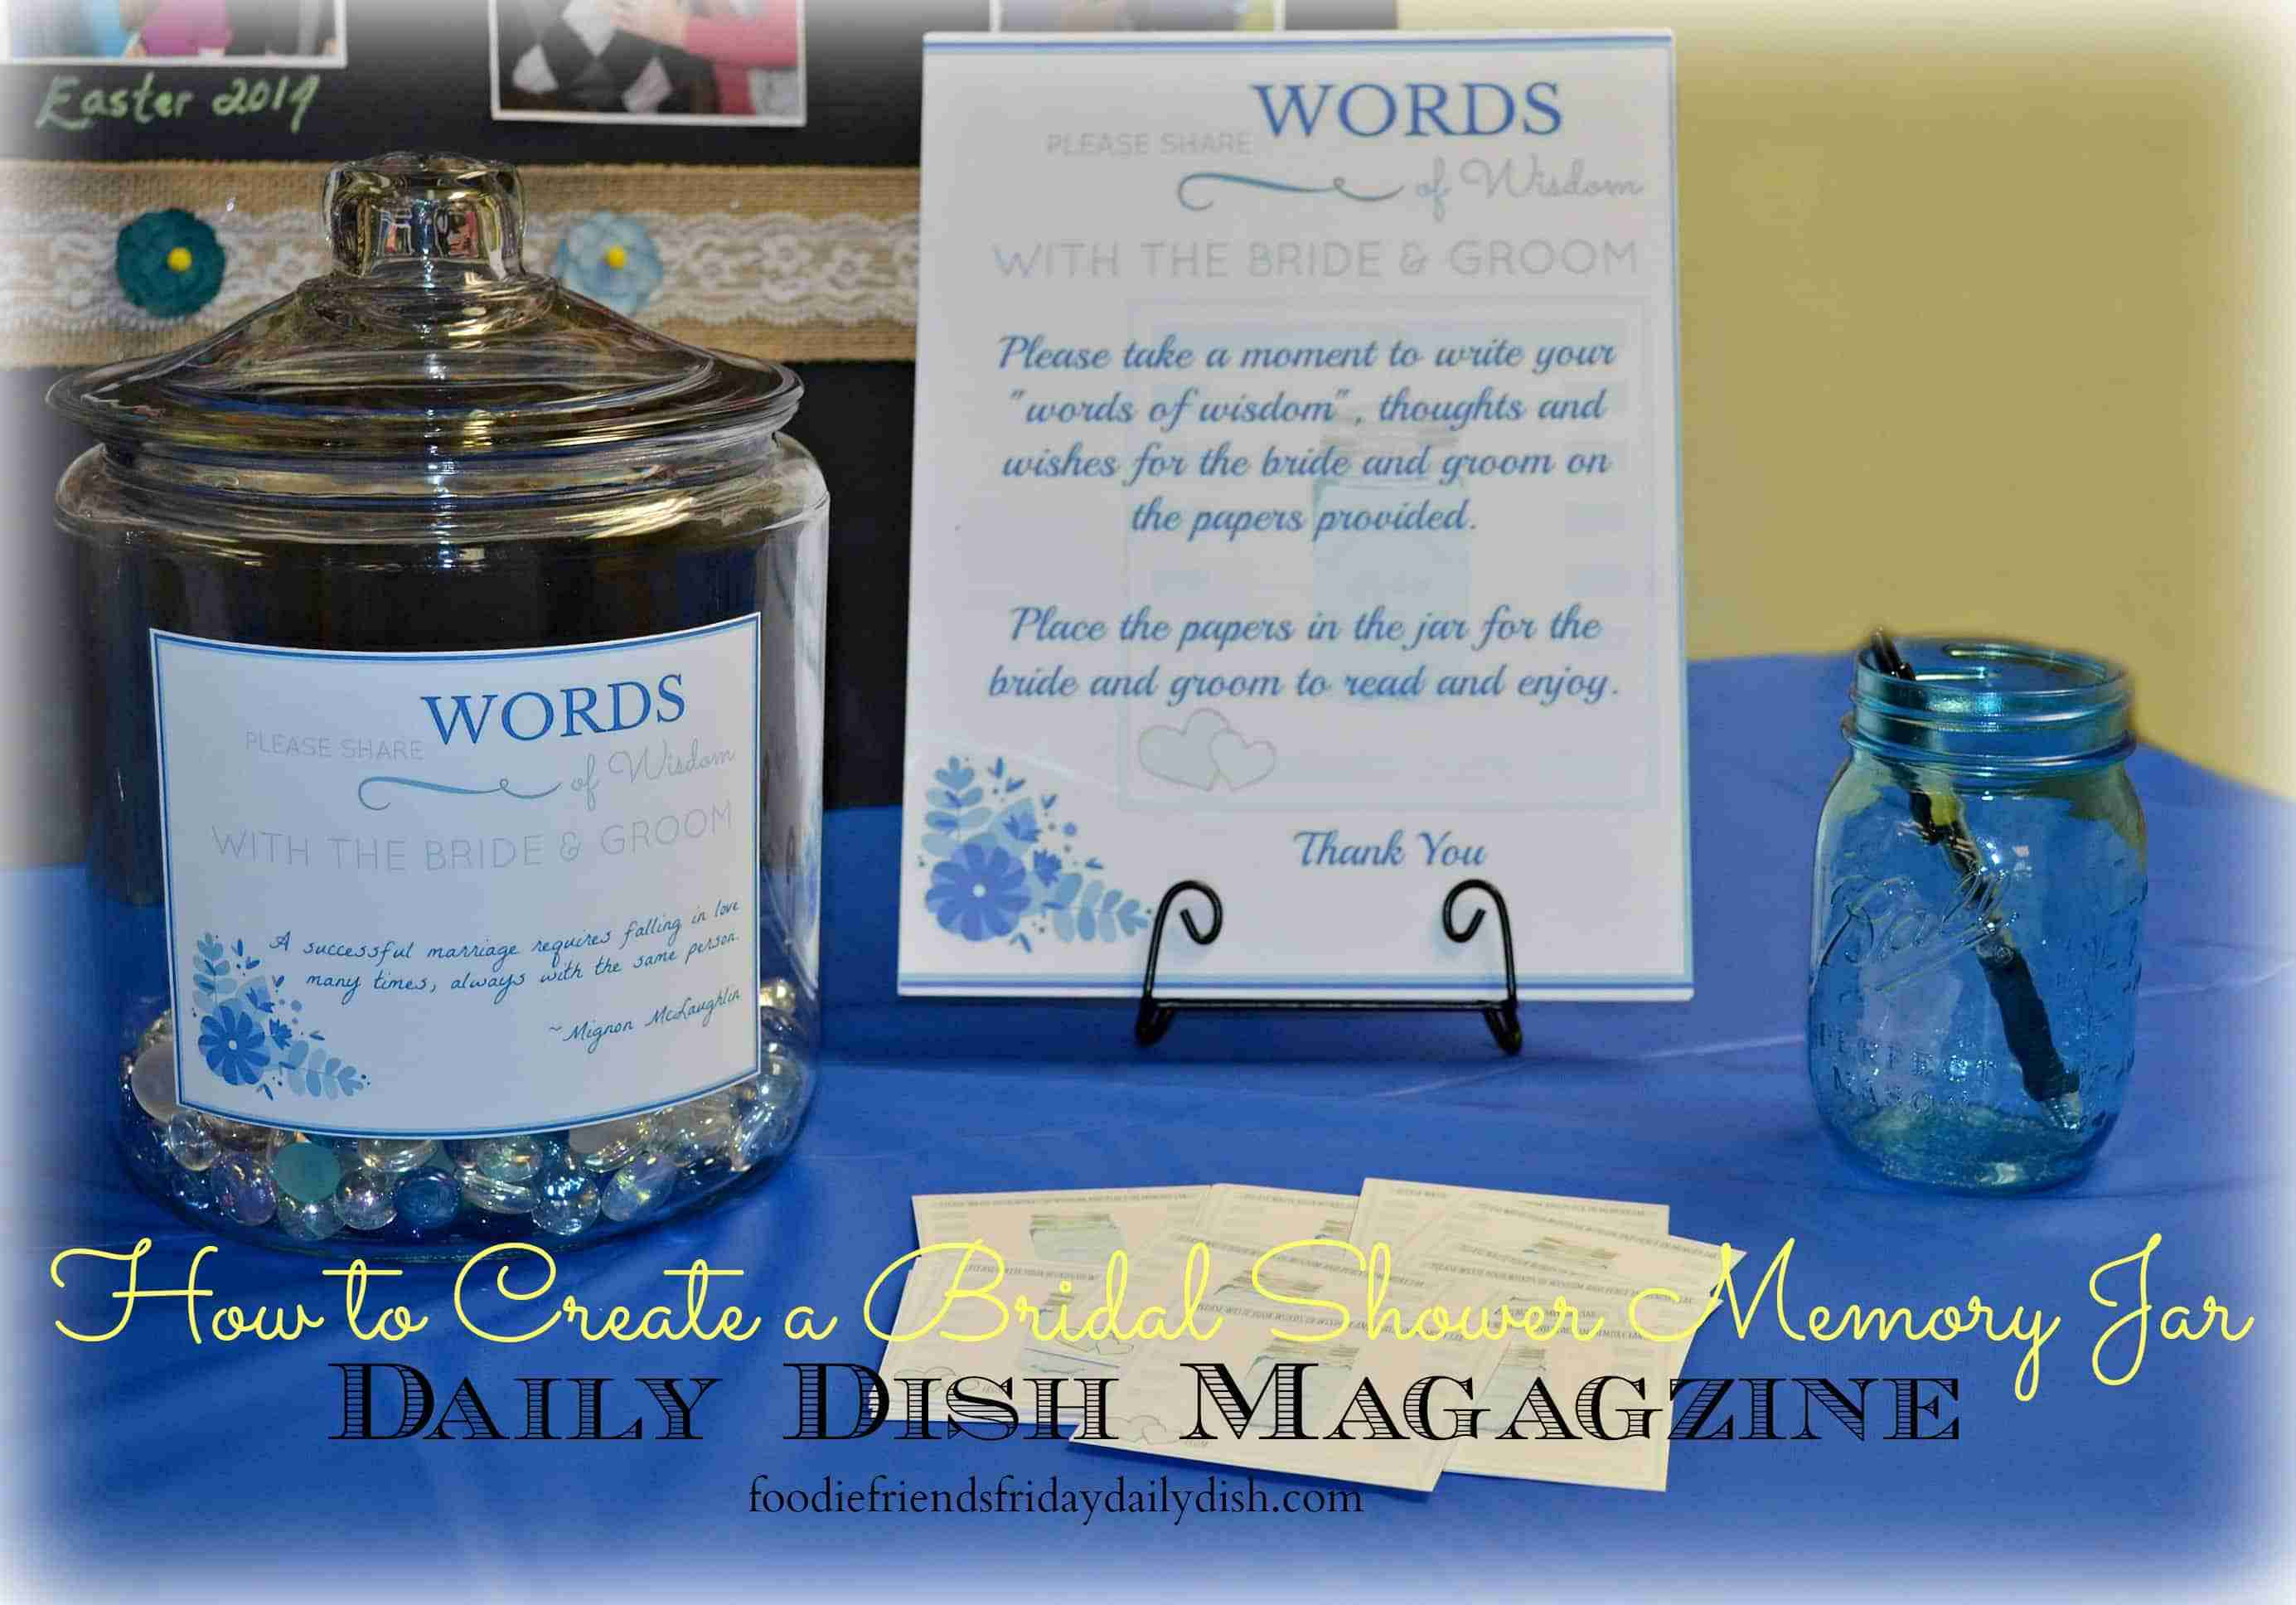 Memory Jars for a Bridal Shower with Printables | Daily Dish Magazine ...